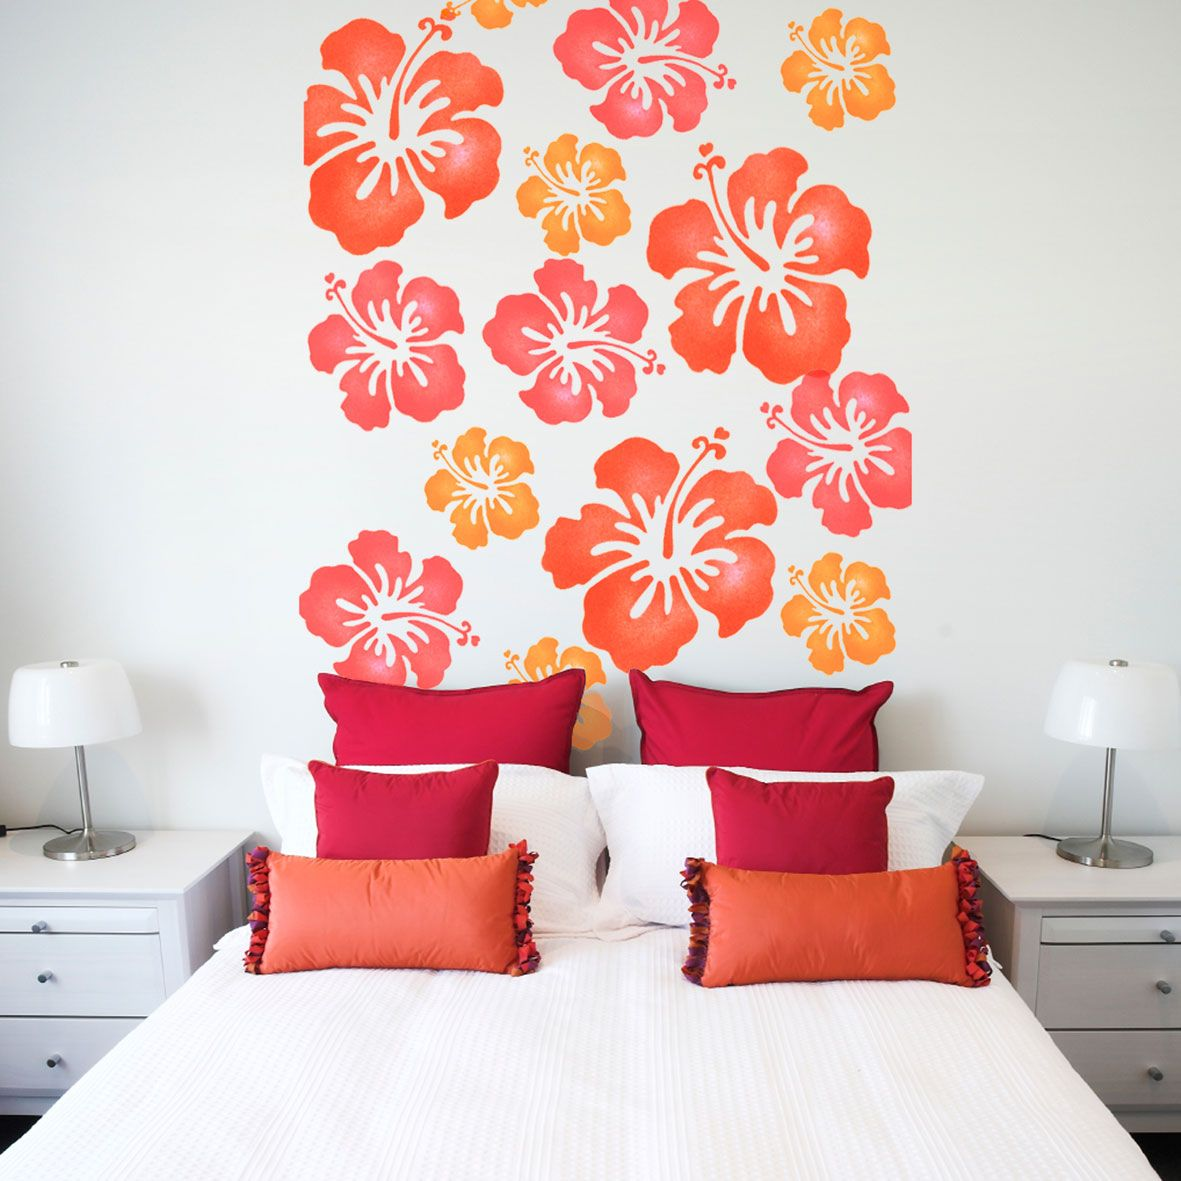 Lovely Stencils   Funky Flowers Stencil   Reusable Wall Stencil Is Perfect For  Decorating A Childs Bedroom Or Nursery. See More Childrens Wall Stencil  Designs At ...